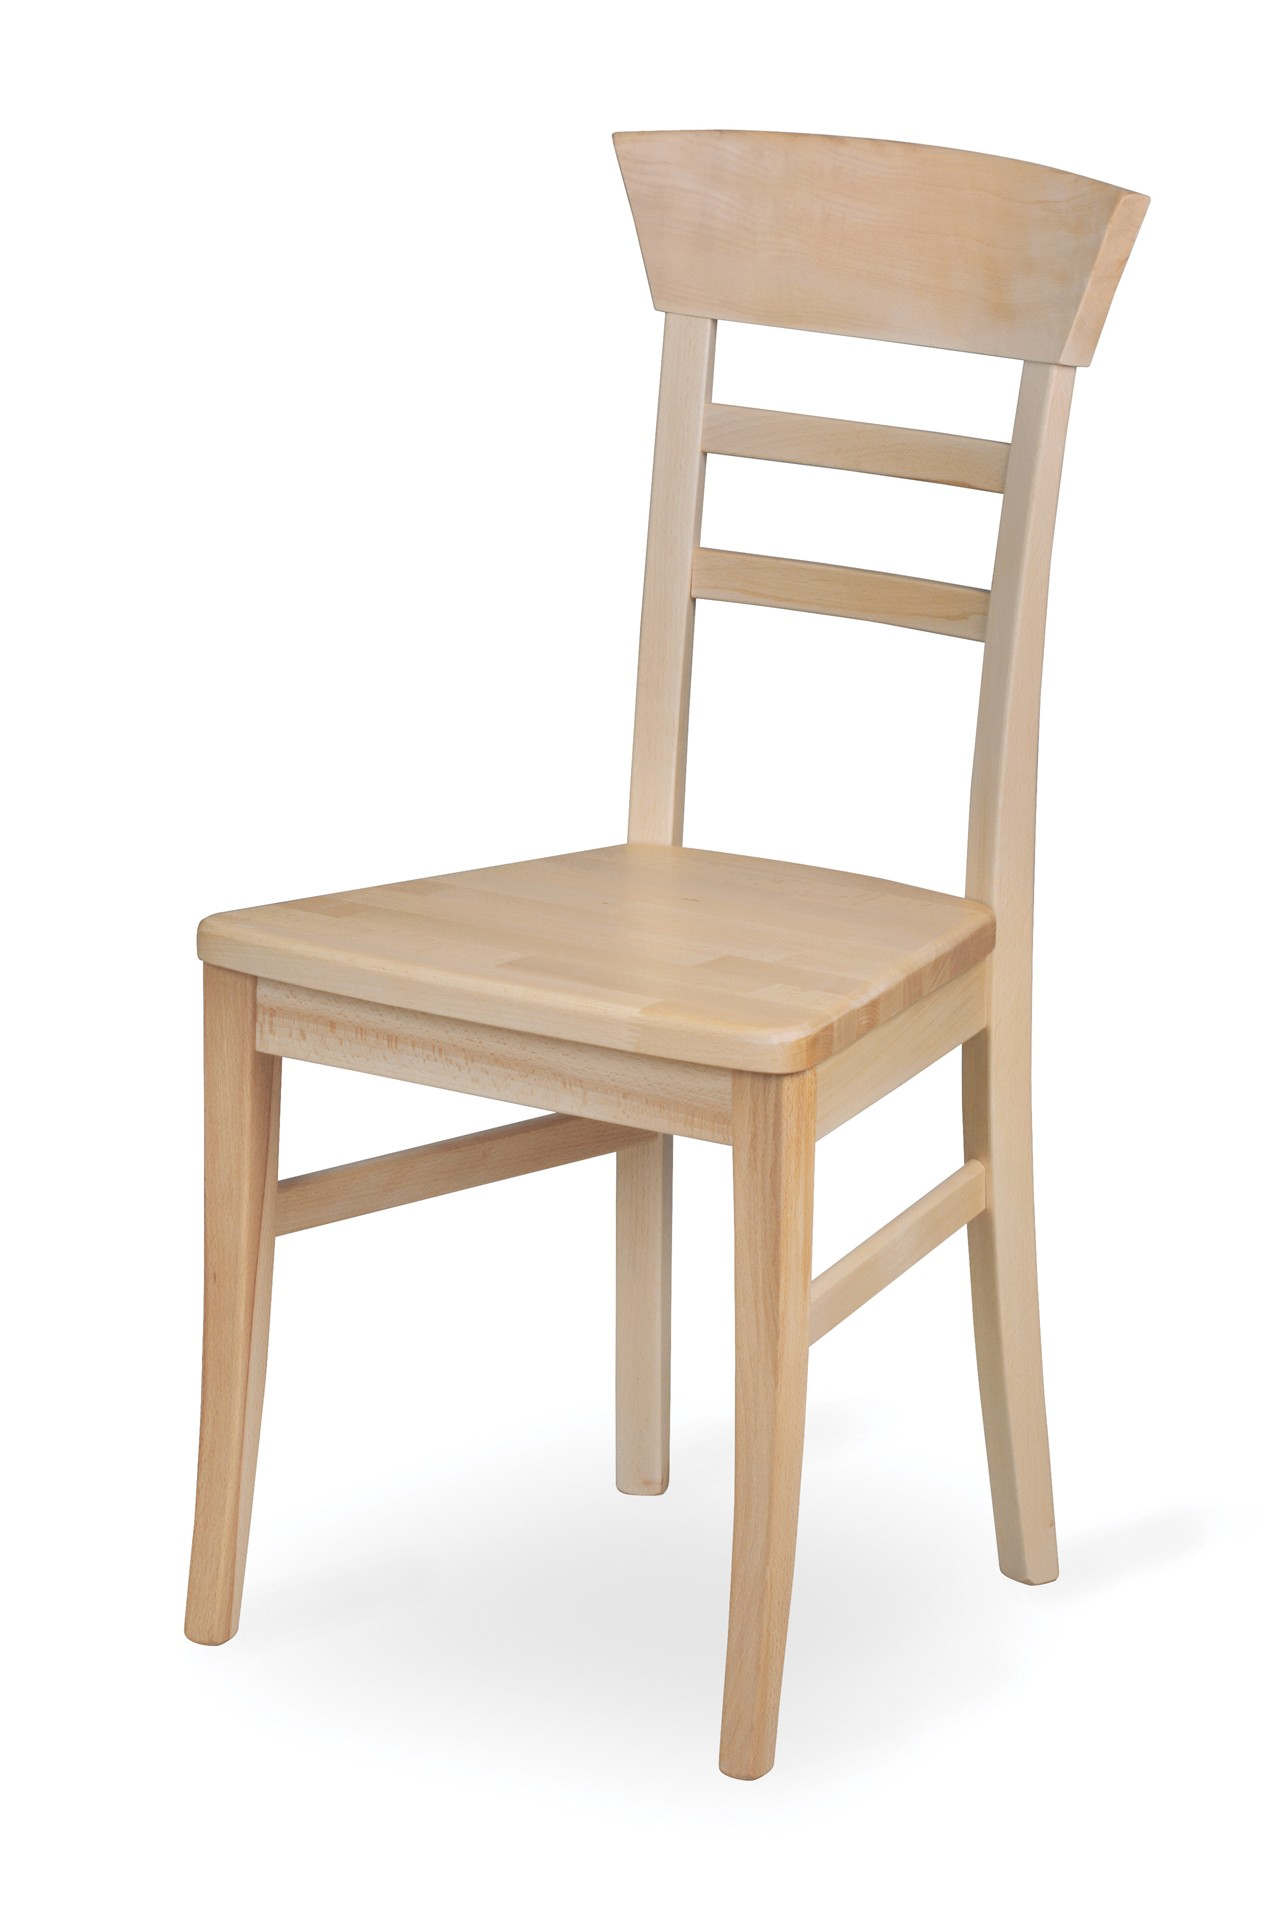 REAL CHAIR with wooden seat